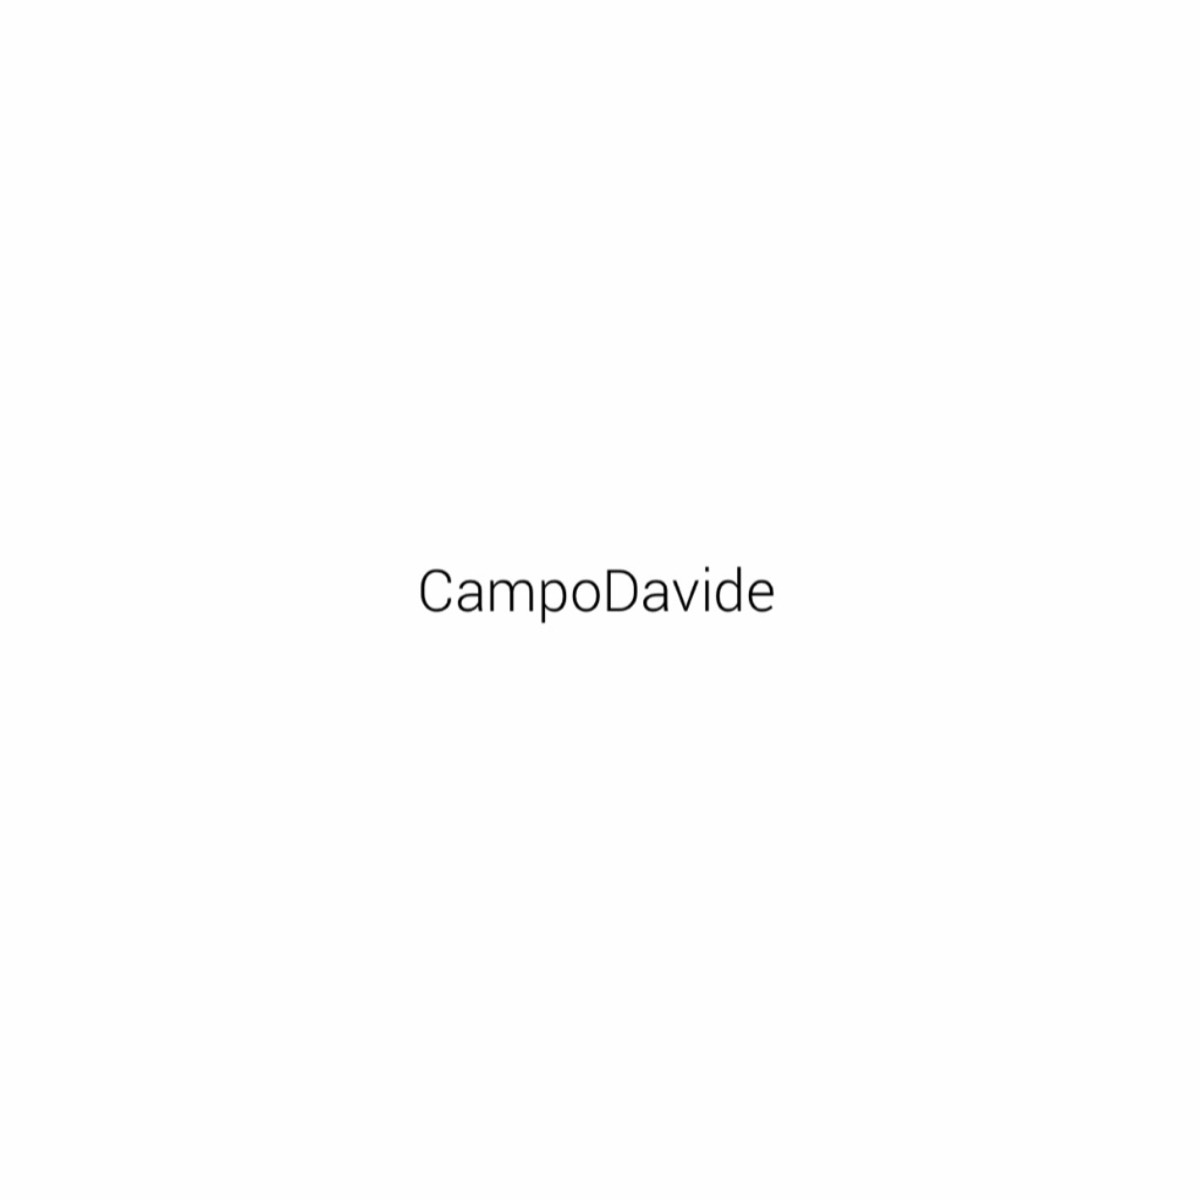 Bump profile picture for @campodavide